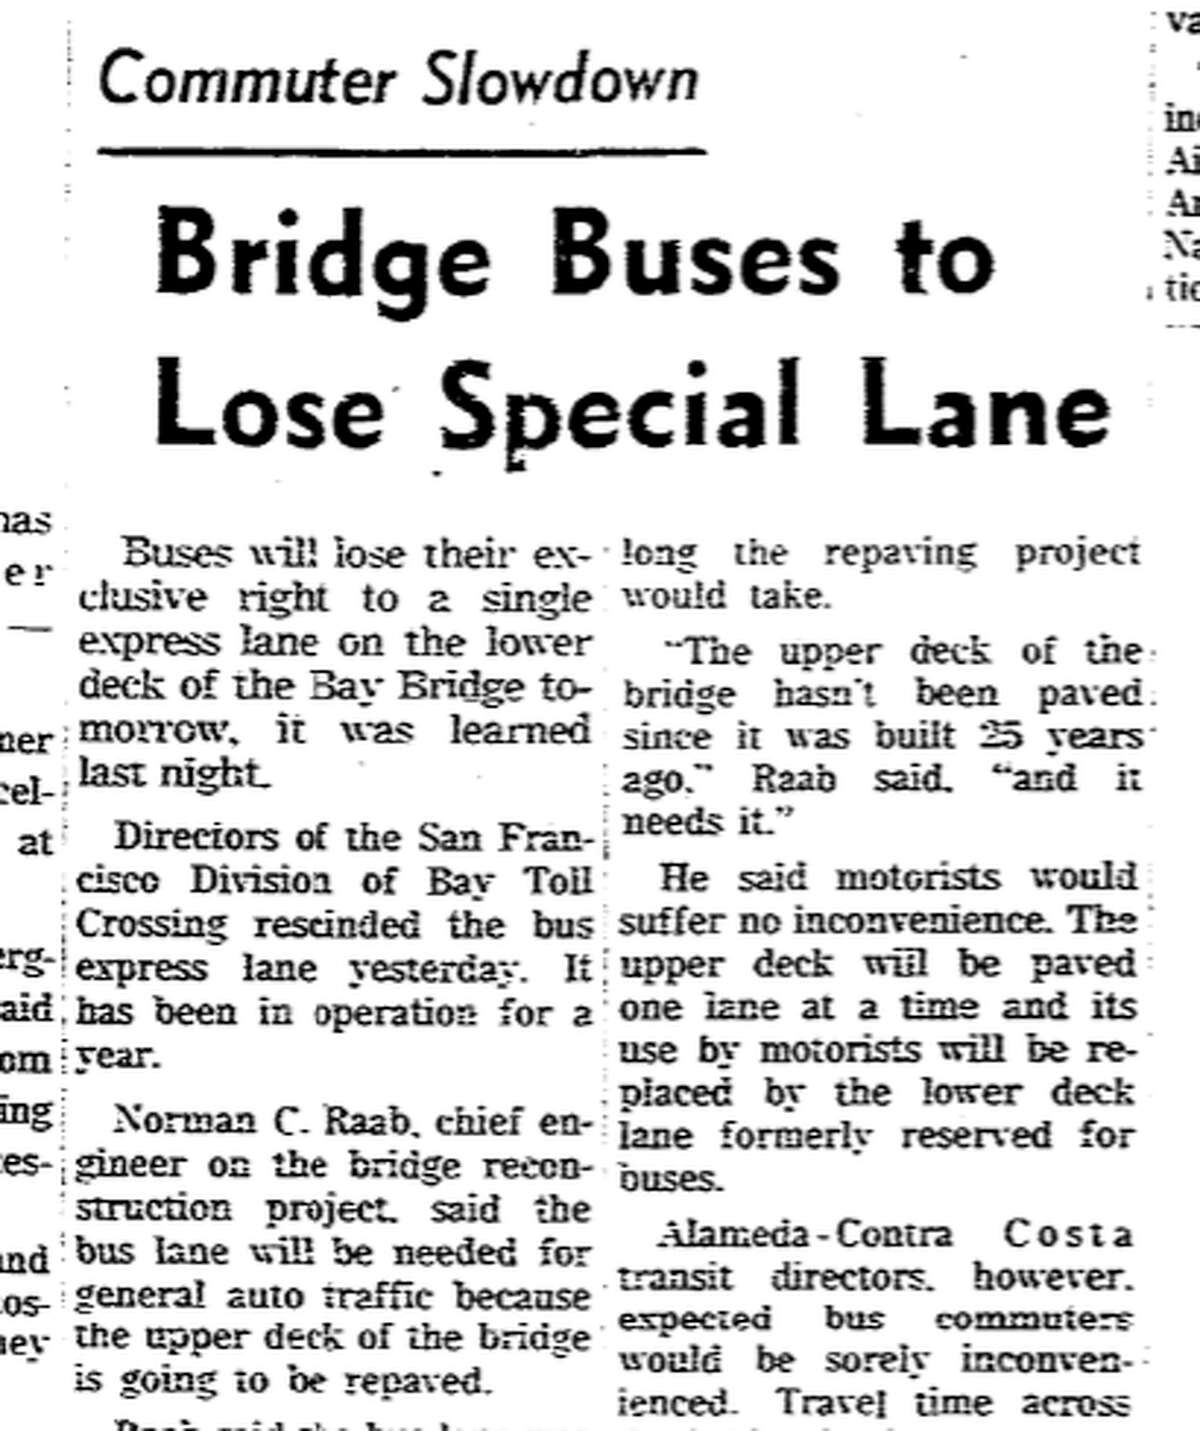 The dedicated bus lane was eliminated on Jan. 31, 1963, much to the chagrin of bus riders who liked the speedier commute.